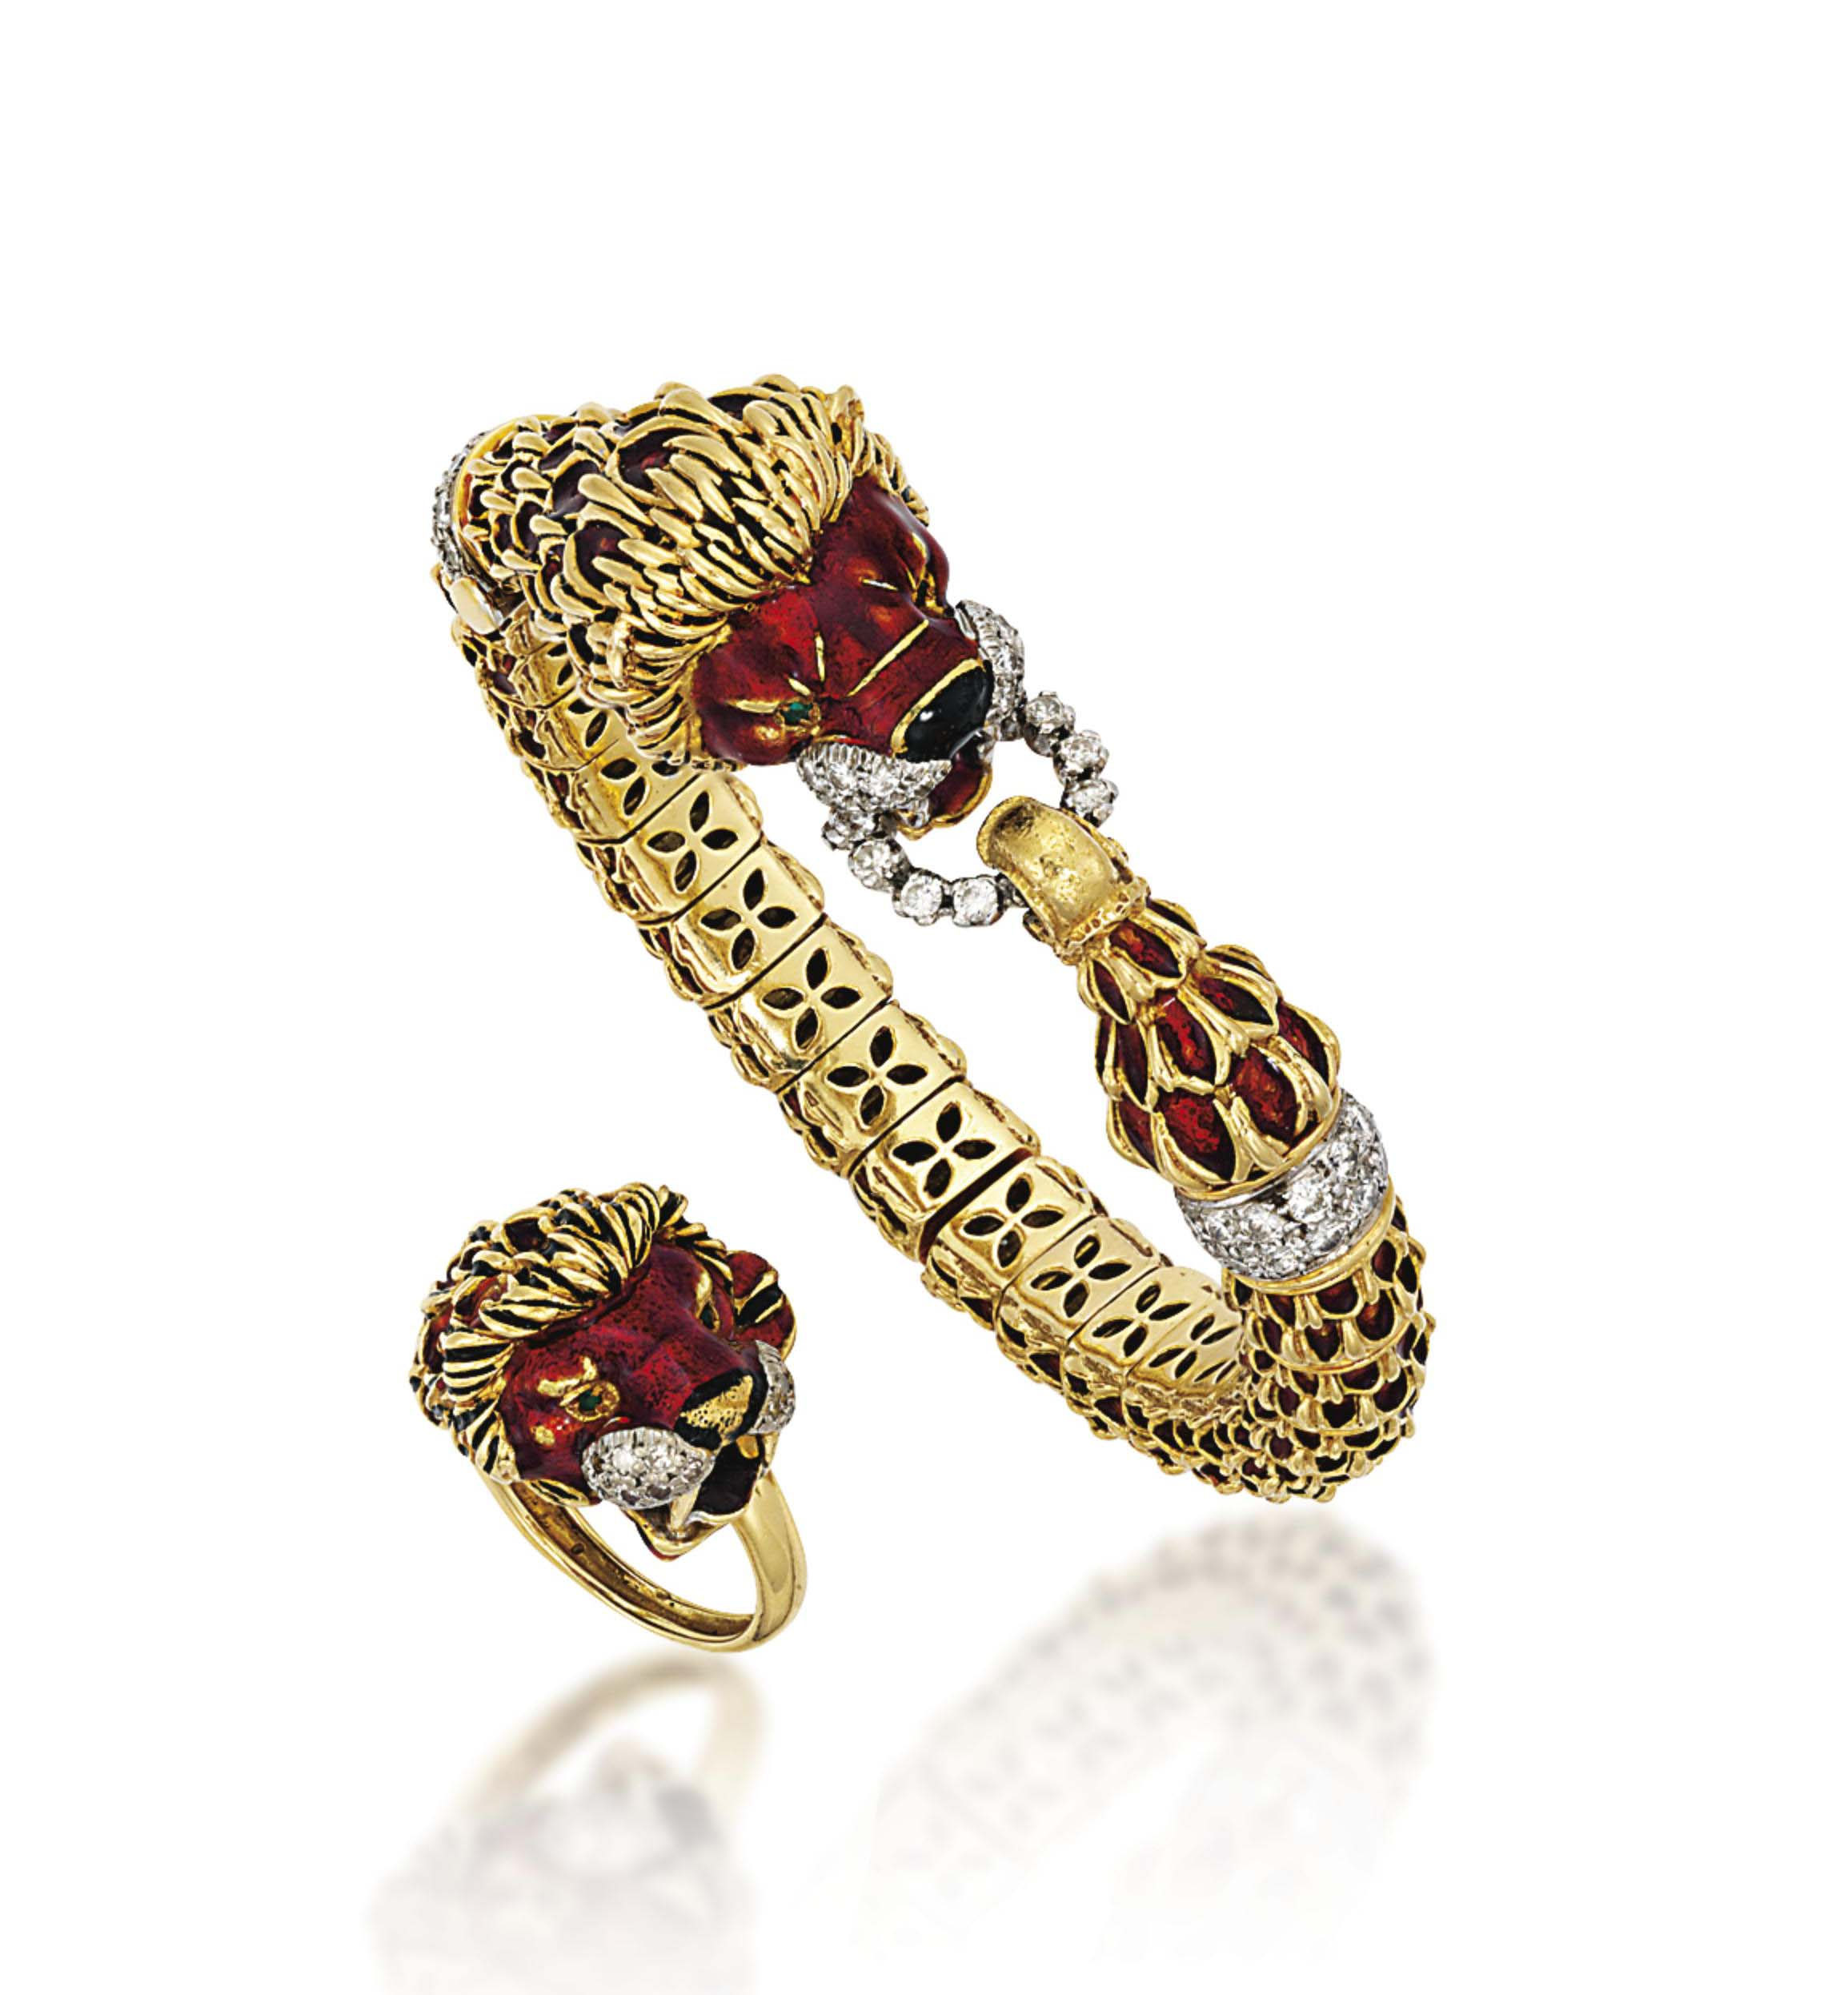 AN 18 CARAT GOLD ENAMEL AND DIAMOND BANGLE AND RING, BY KUTCHINSKY